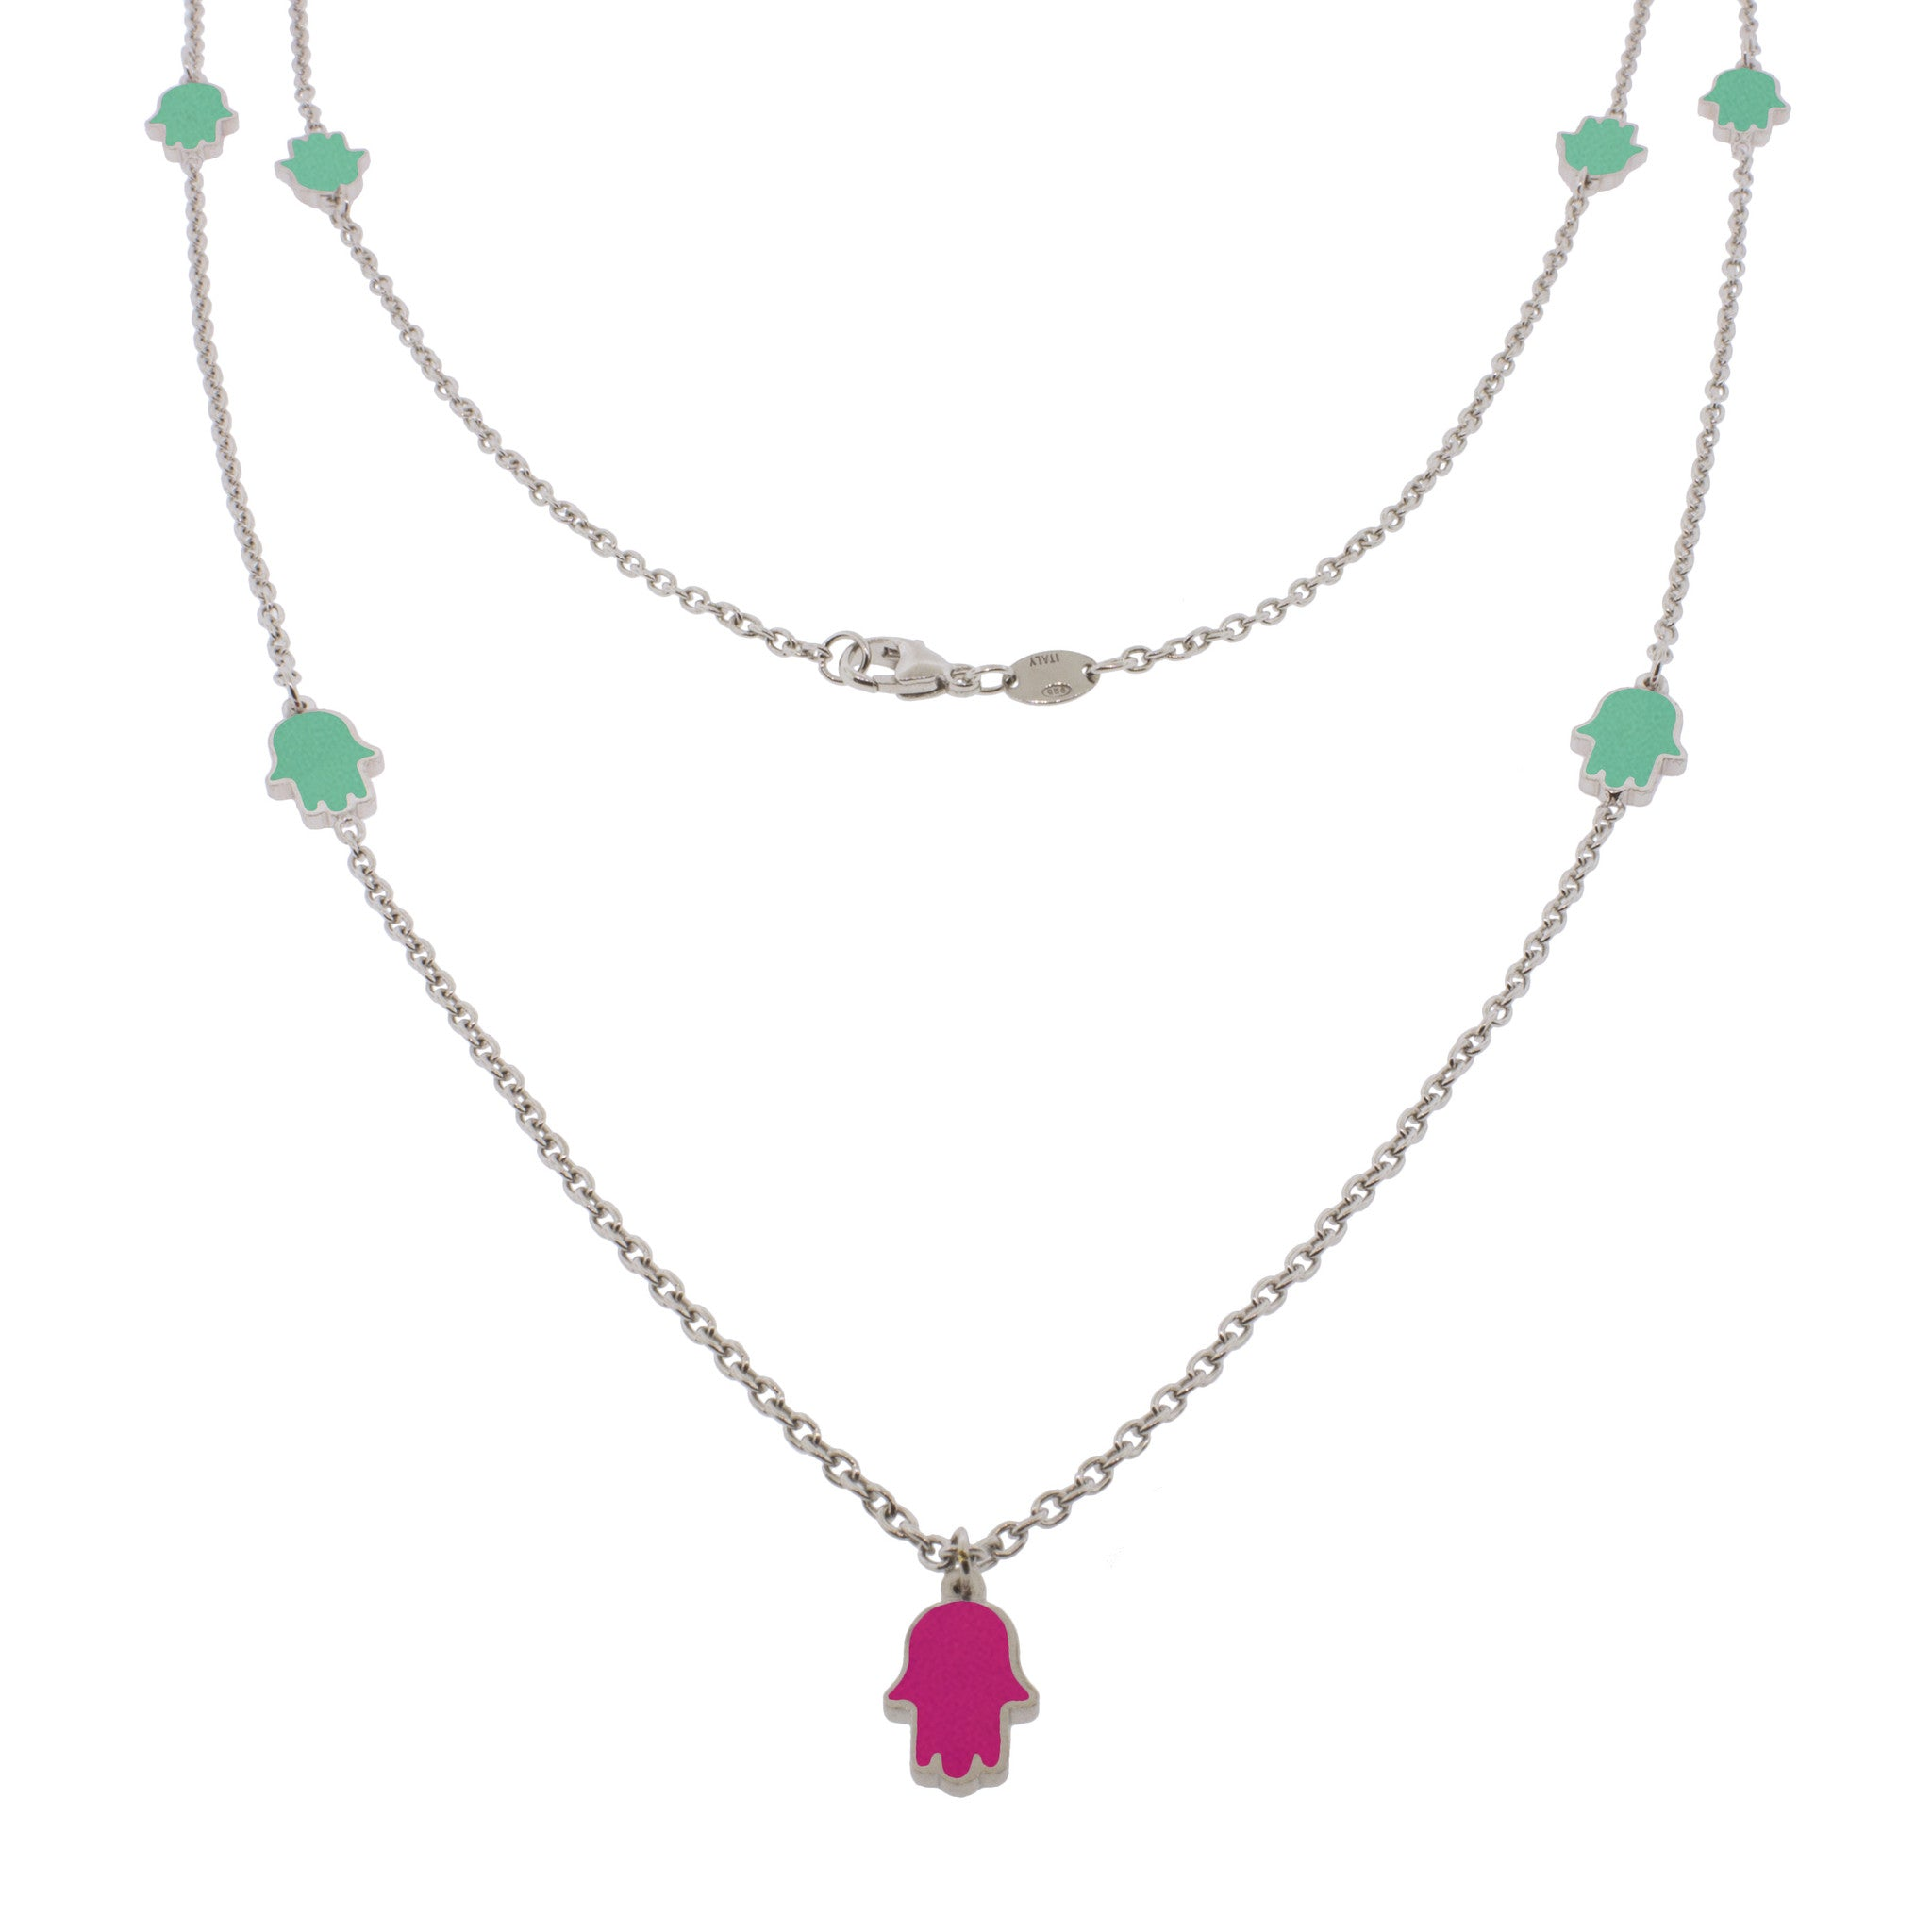 32-inch Touch of Luck Sterling Silver Necklace - Turquoise